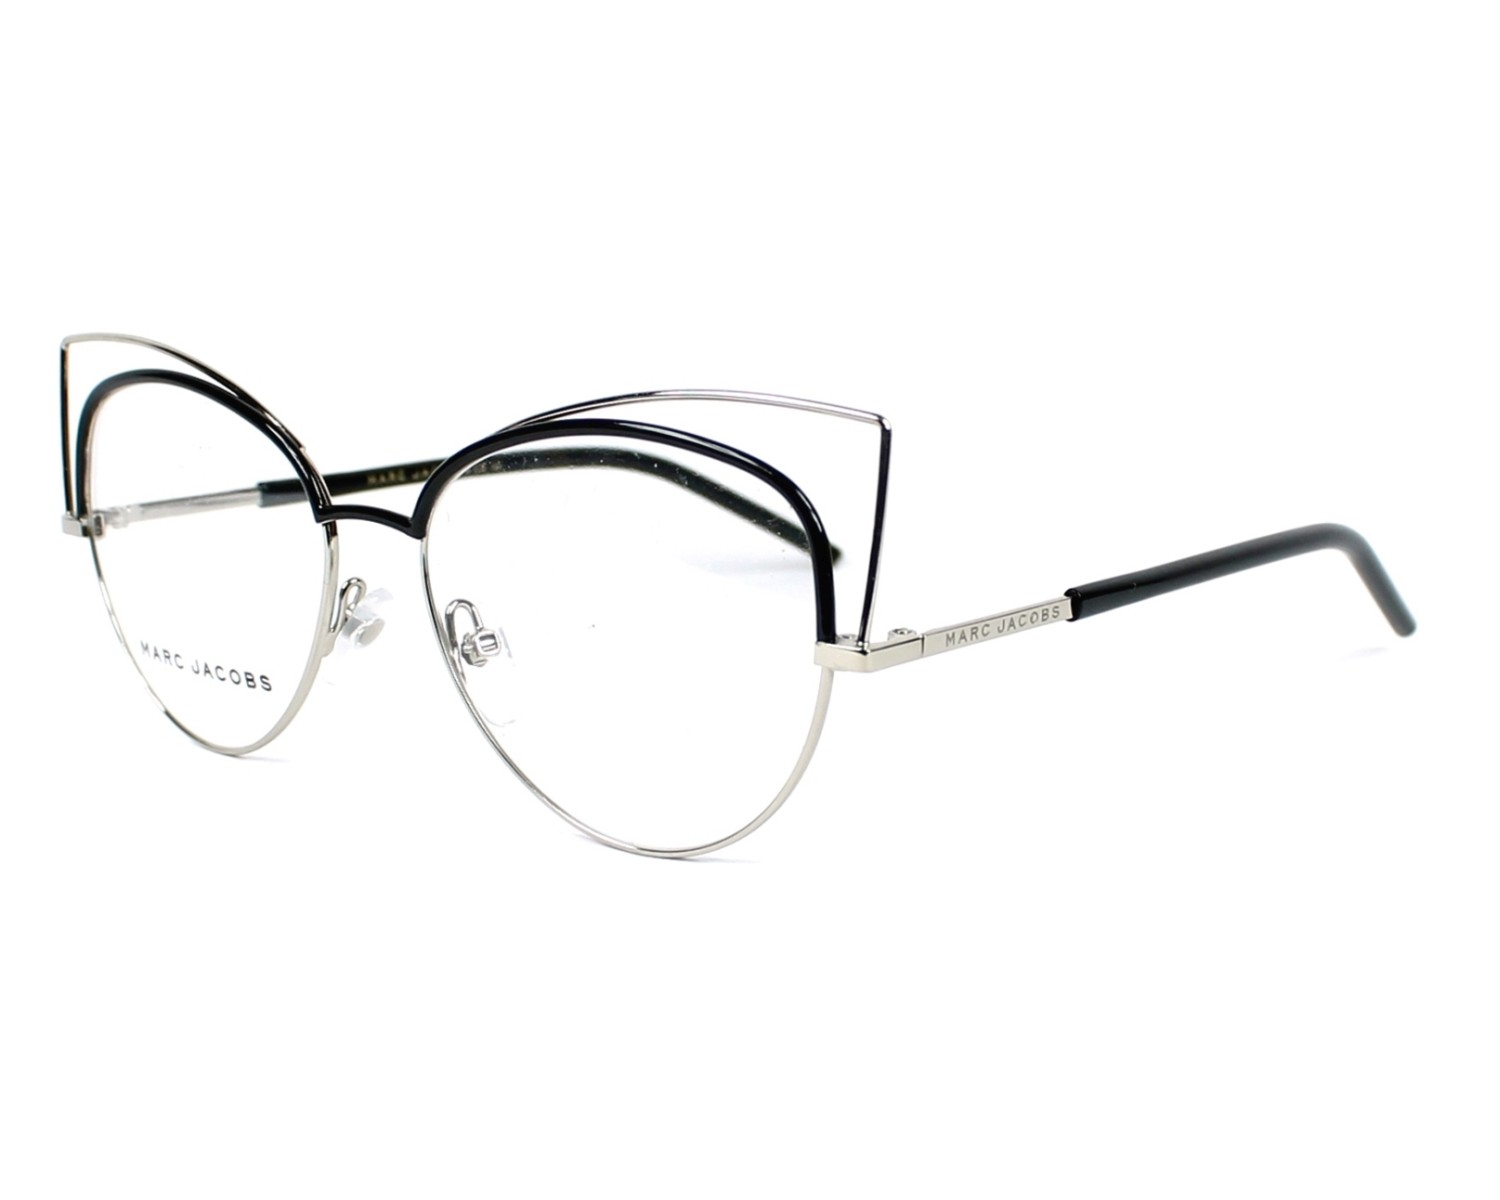 marc jacobs eyeglasses marc 12 uuv black visio. Black Bedroom Furniture Sets. Home Design Ideas